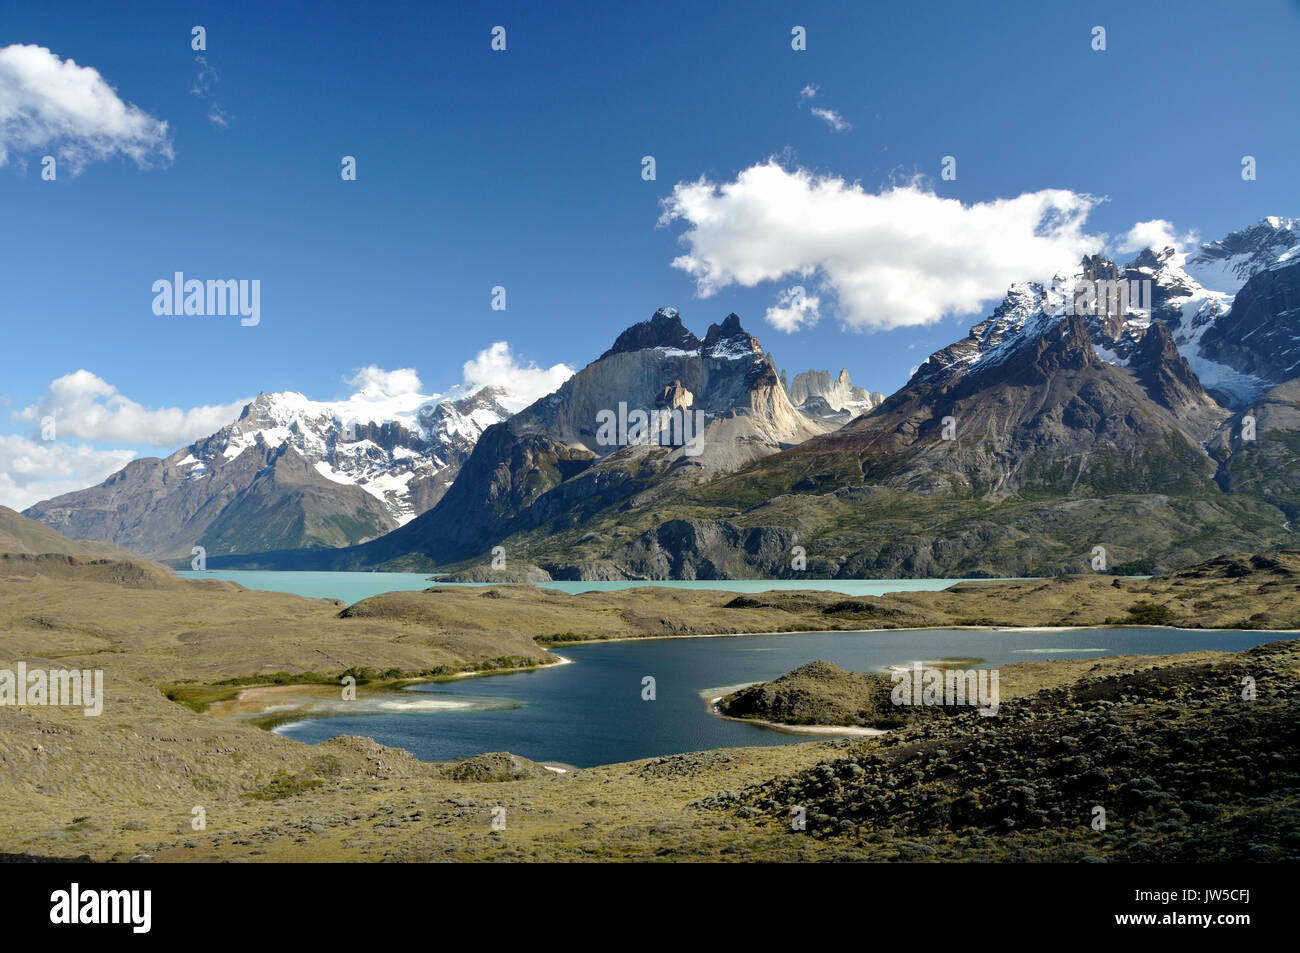 Lake Lago Nordenskjold in front of the Torres del Paine mountain range, Patagonia, Chile - Stock Image